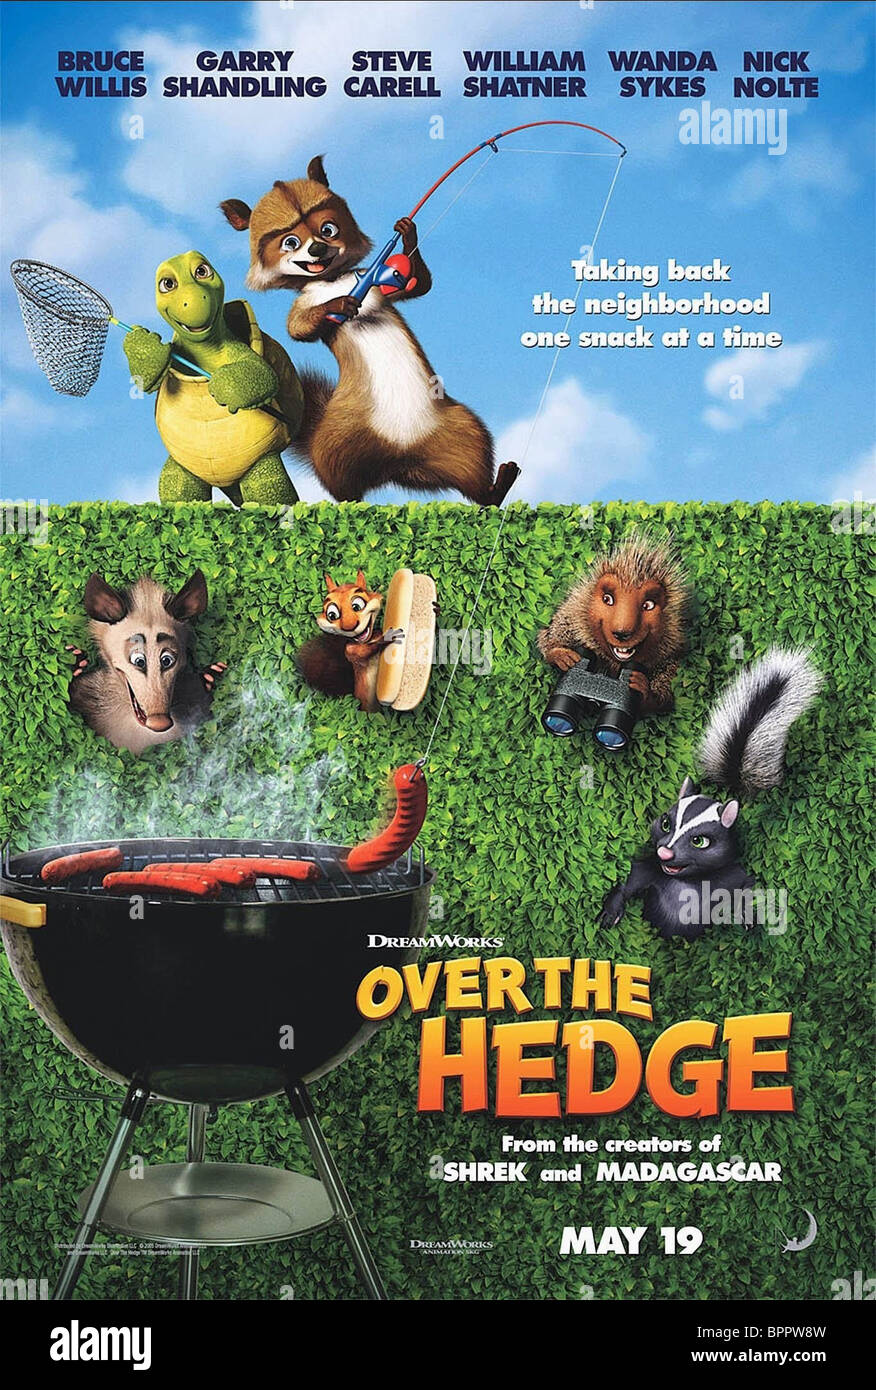 Uncategorized Verne The Turtle verne the turtle rj raccoon ozzie hammy squirrel spike porcupine stella skunk poster over hedge 2006